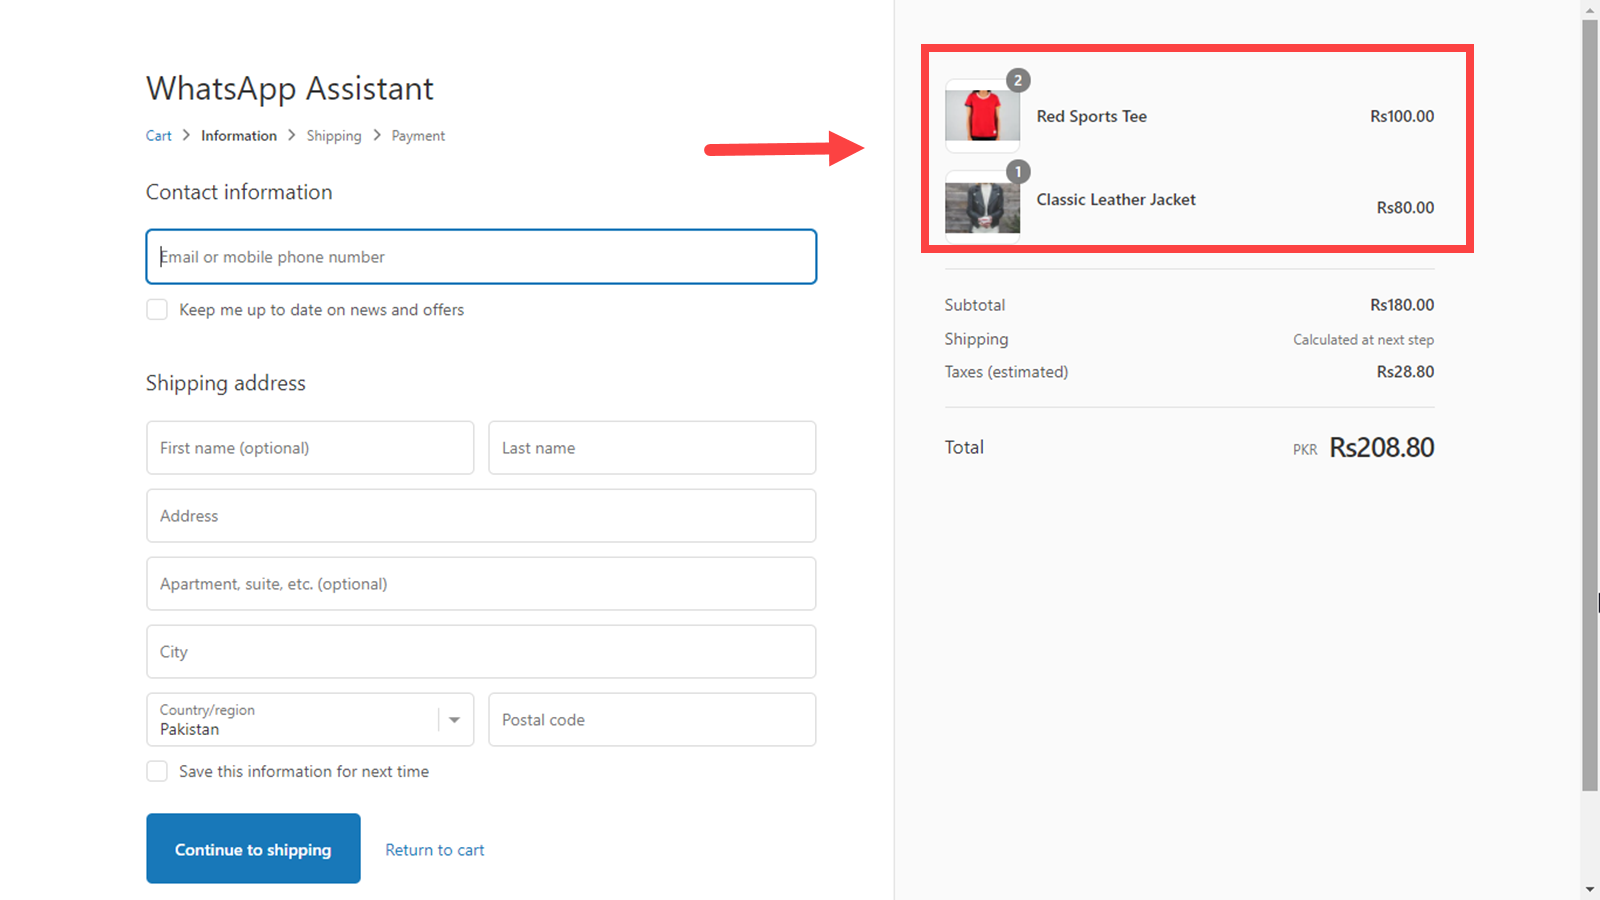 Invoice Link Take customers back to Checkout page